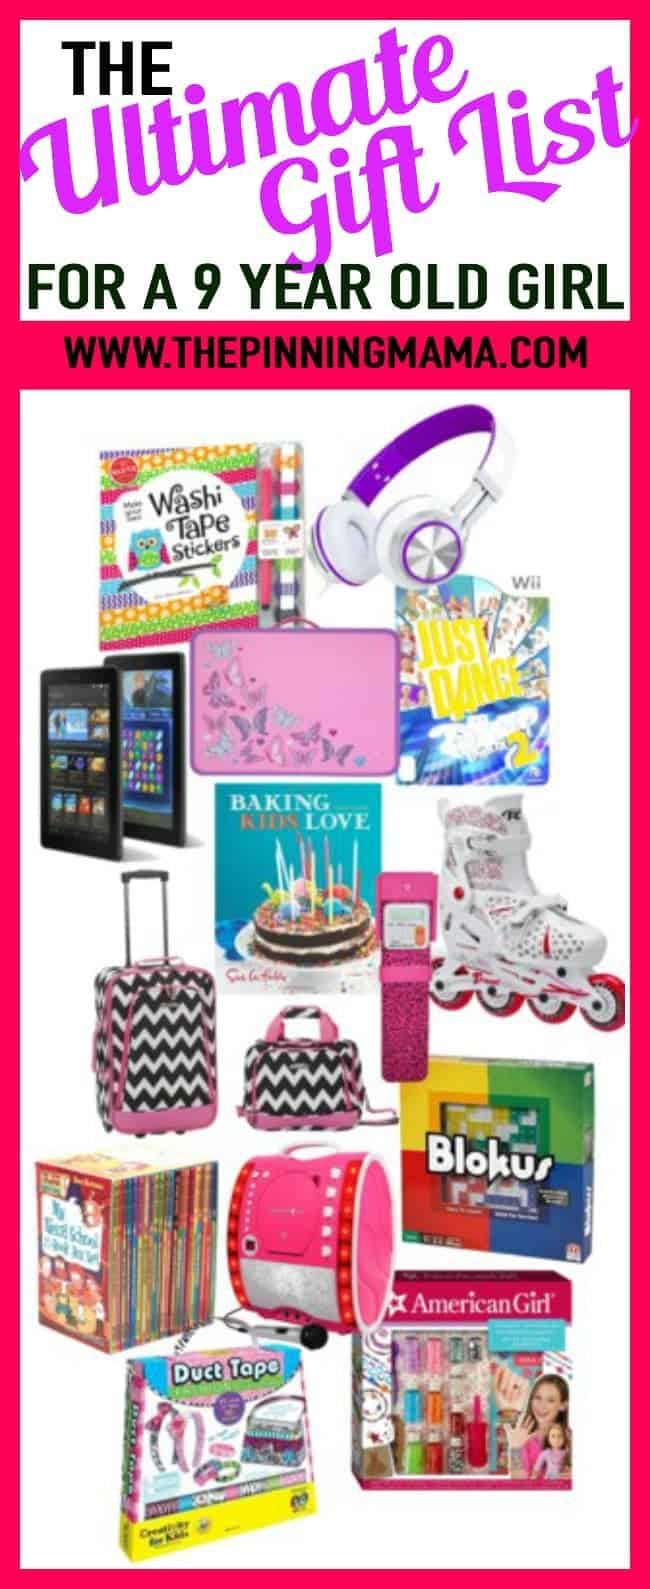 The BEST gift ideas for a 9 year old girl- includes ideas for games,